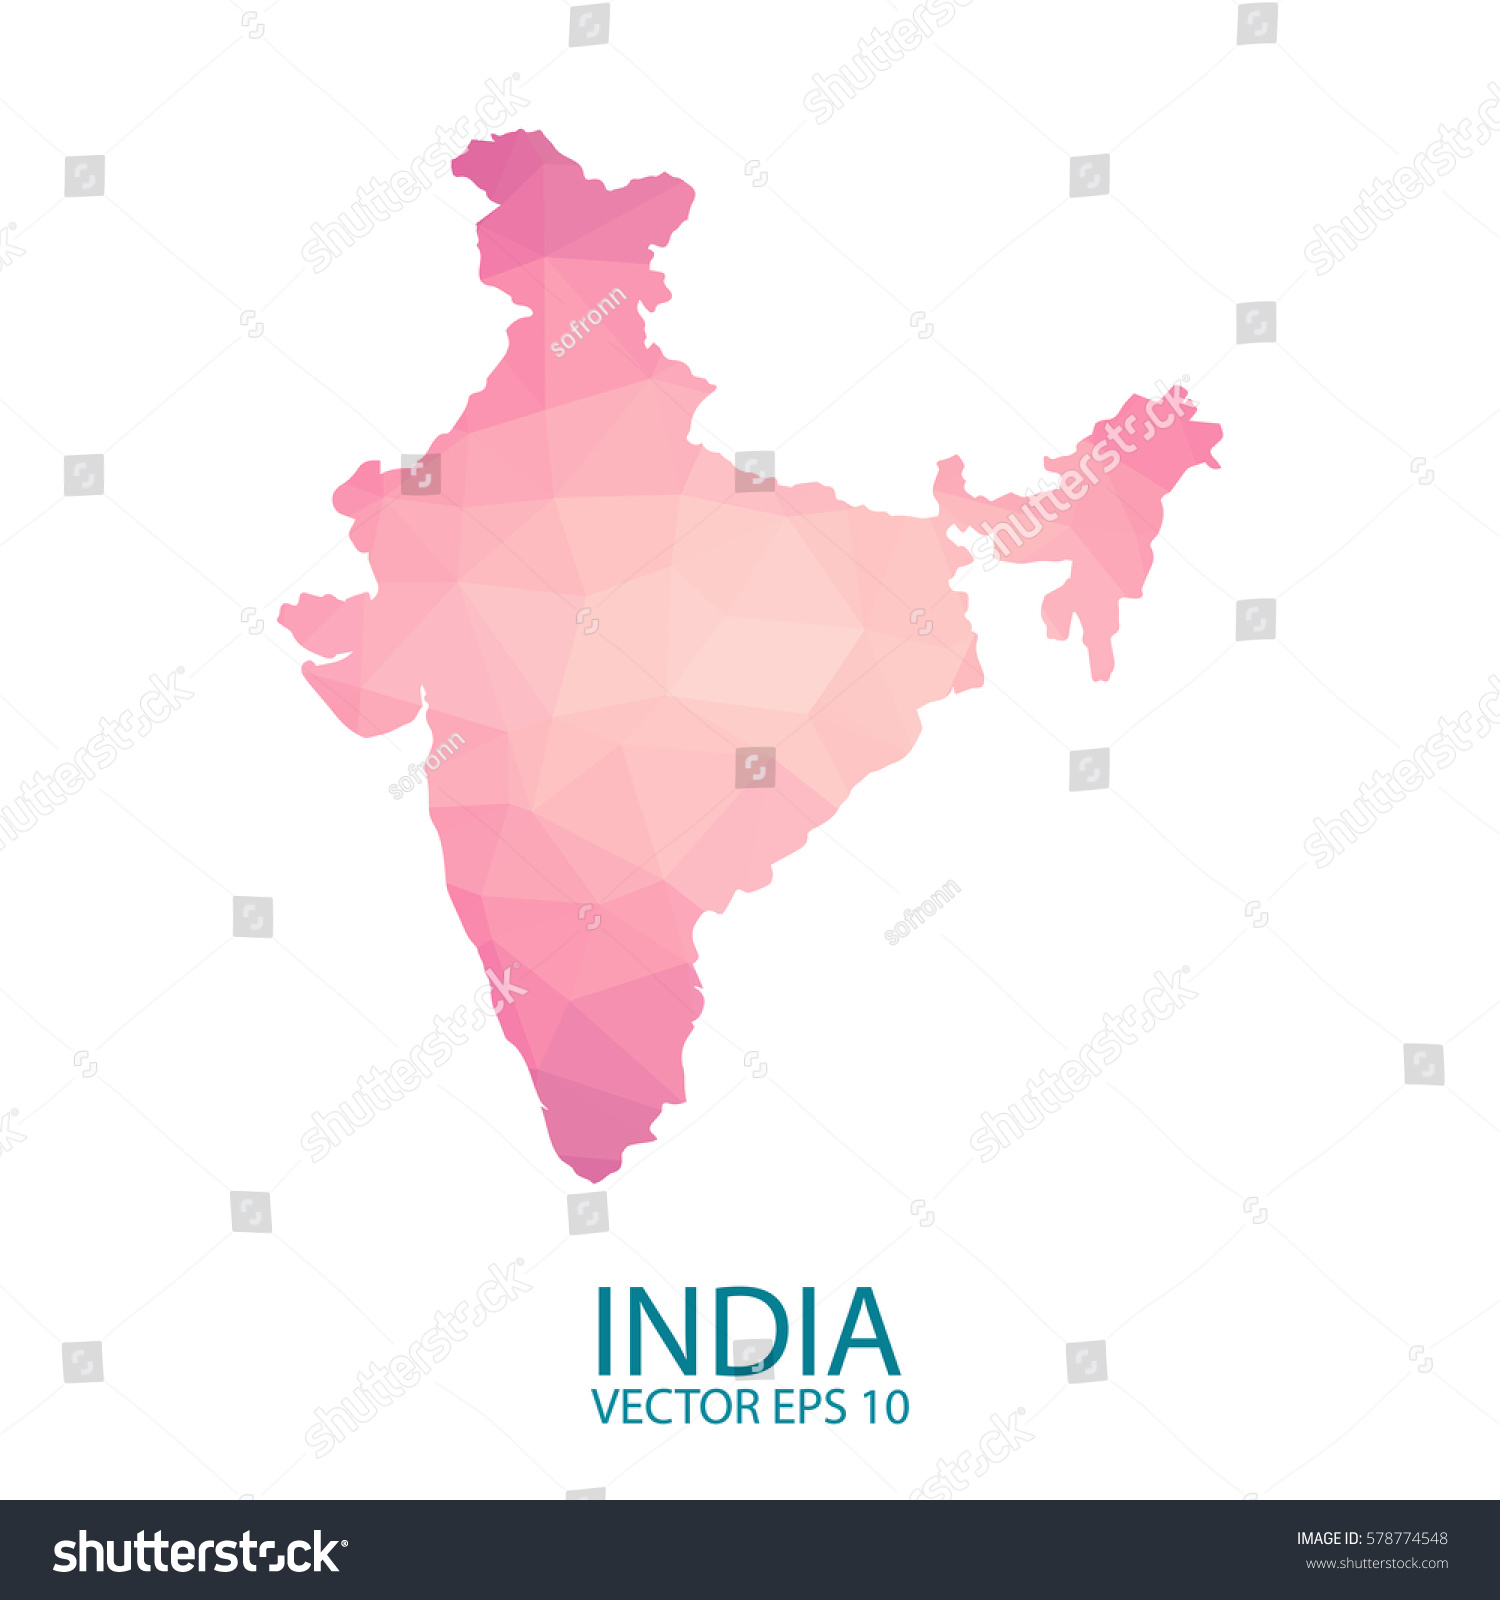 Bright india map national colors geometric stock vector 578774548 bright india map in national colors geometric style low poly triangles pink polygons vector gumiabroncs Gallery